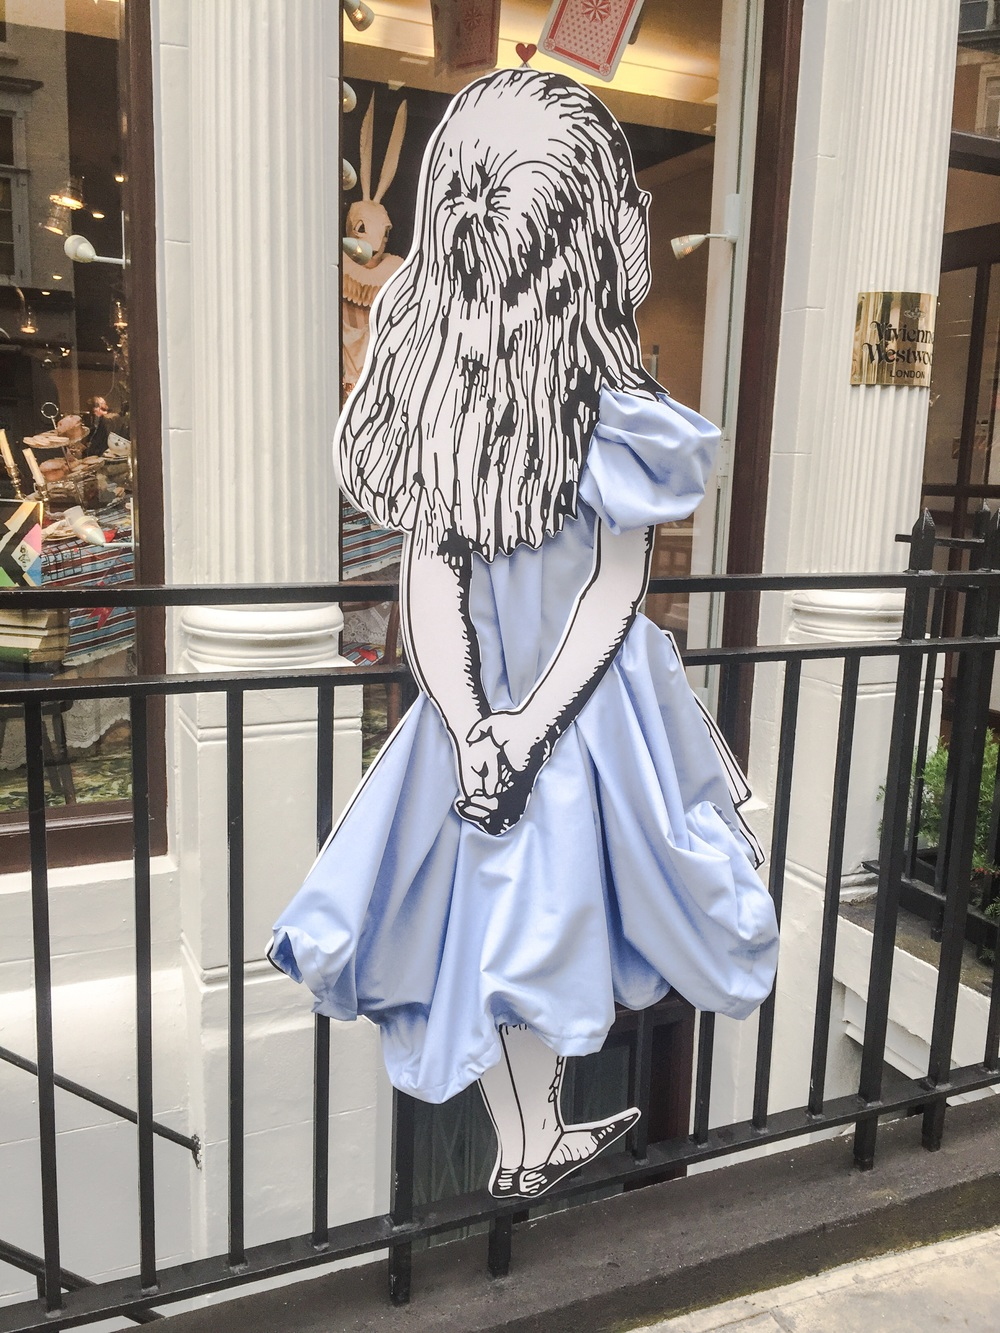 Vivienne Westwood celebrating Alice in Wonderland outside their Conduit Street store